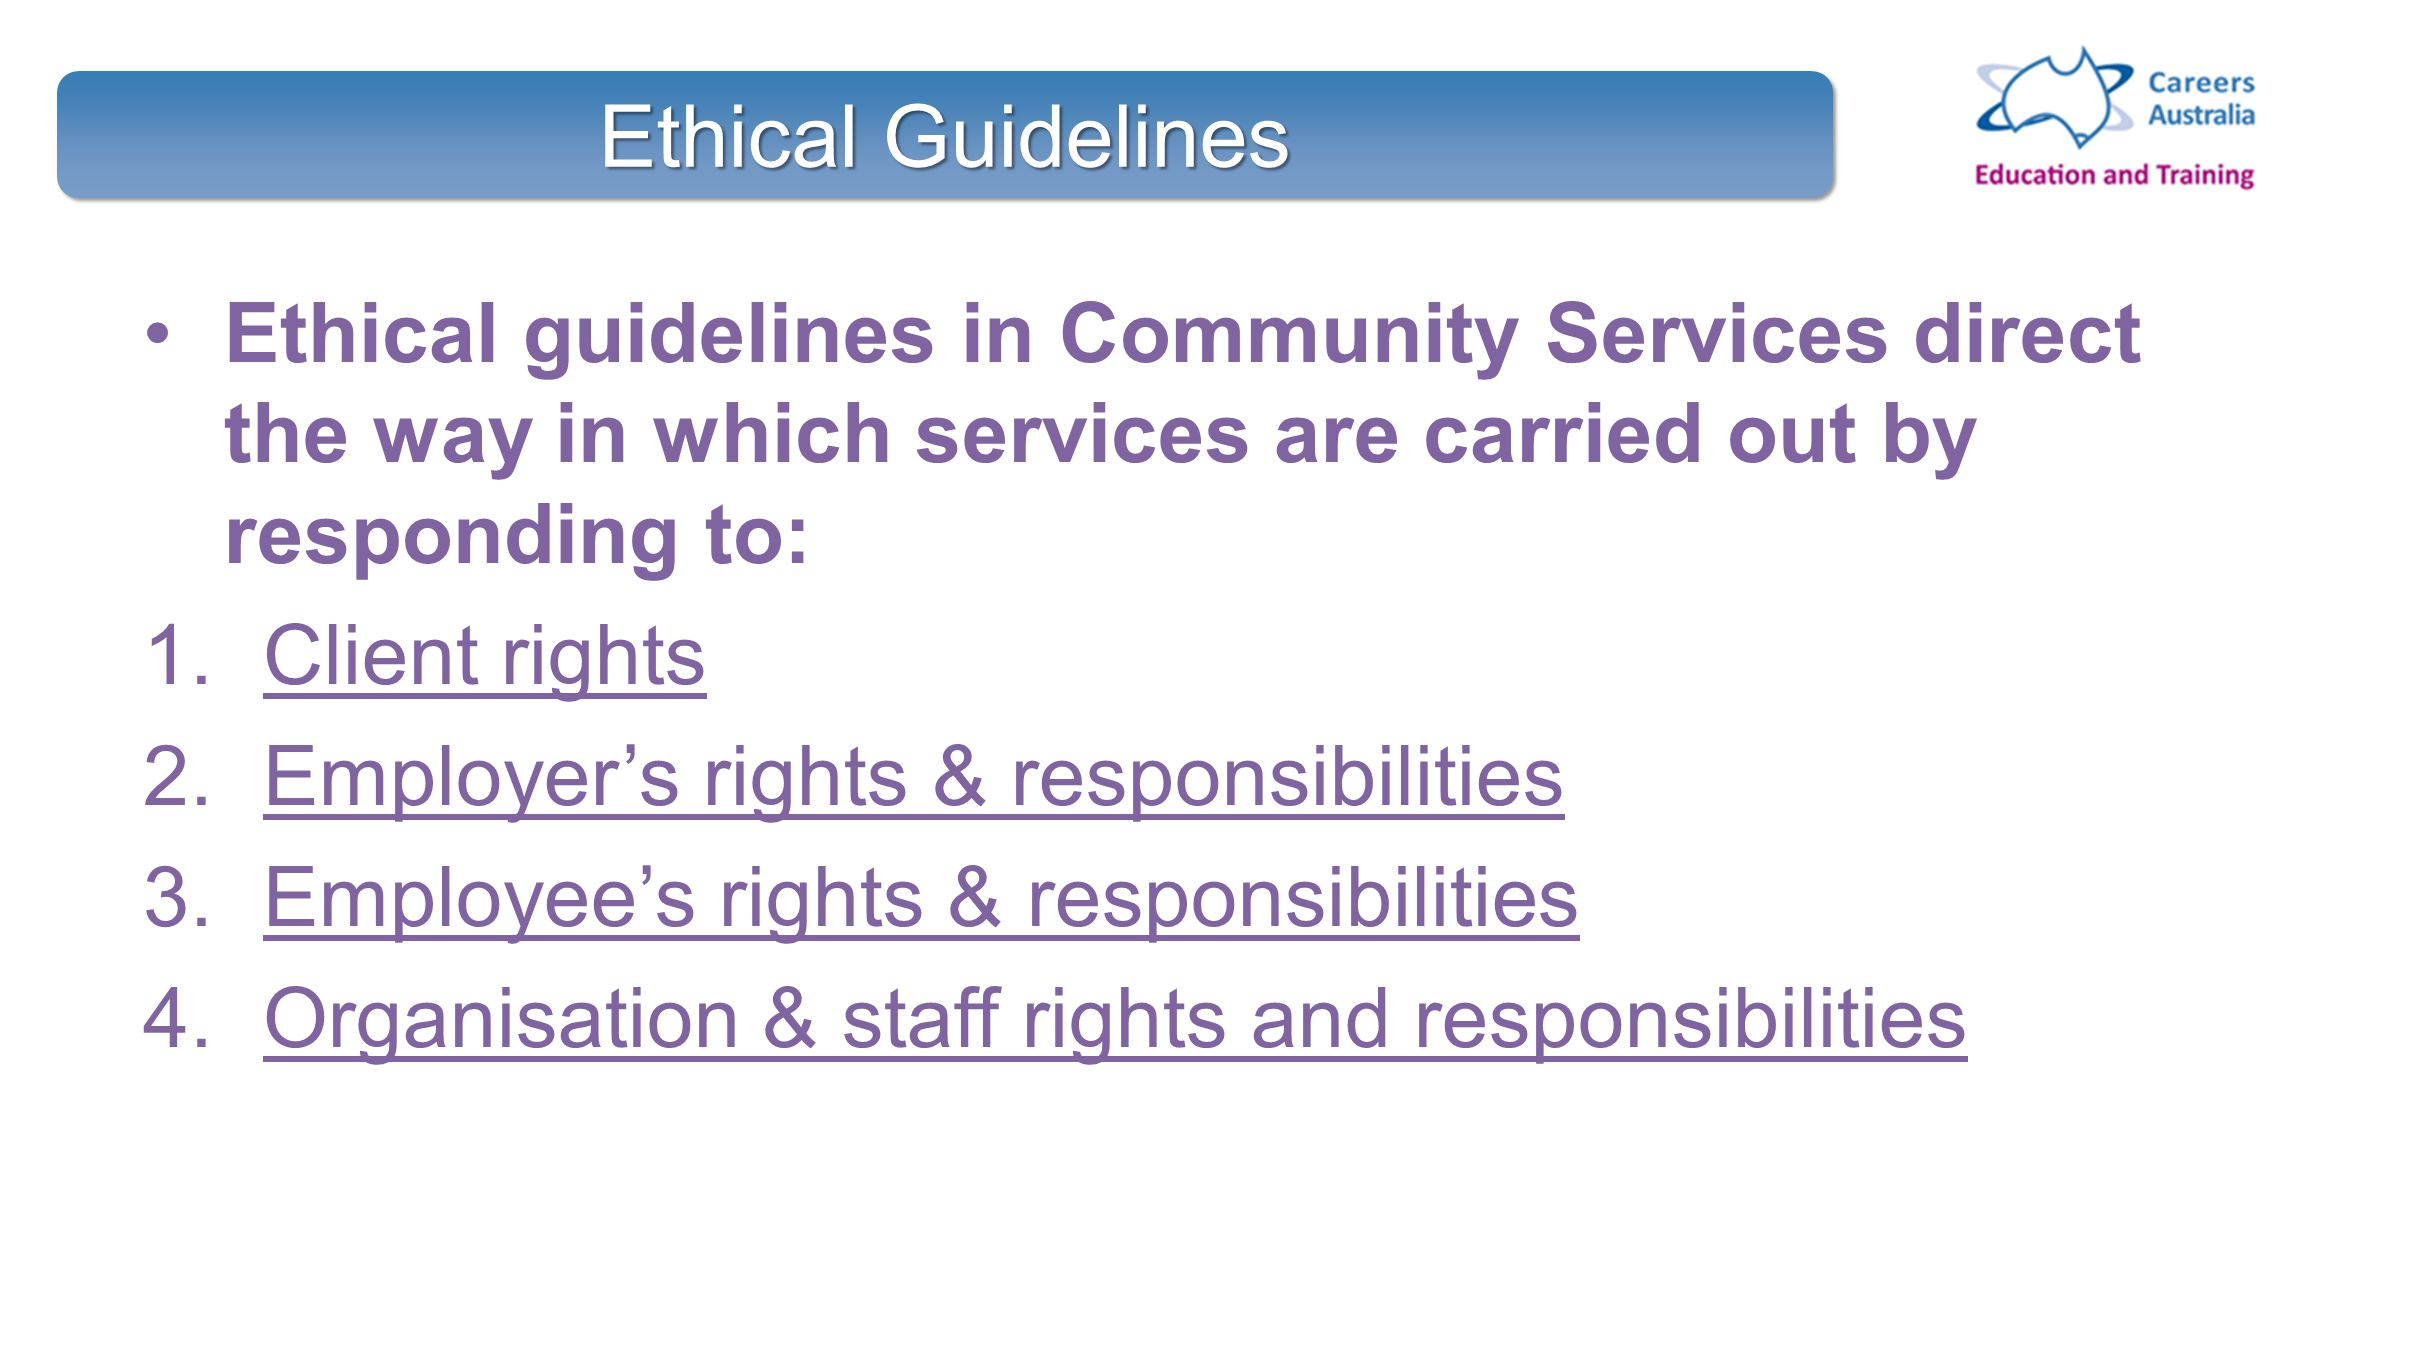 Legal and ethical responsibilities of community service